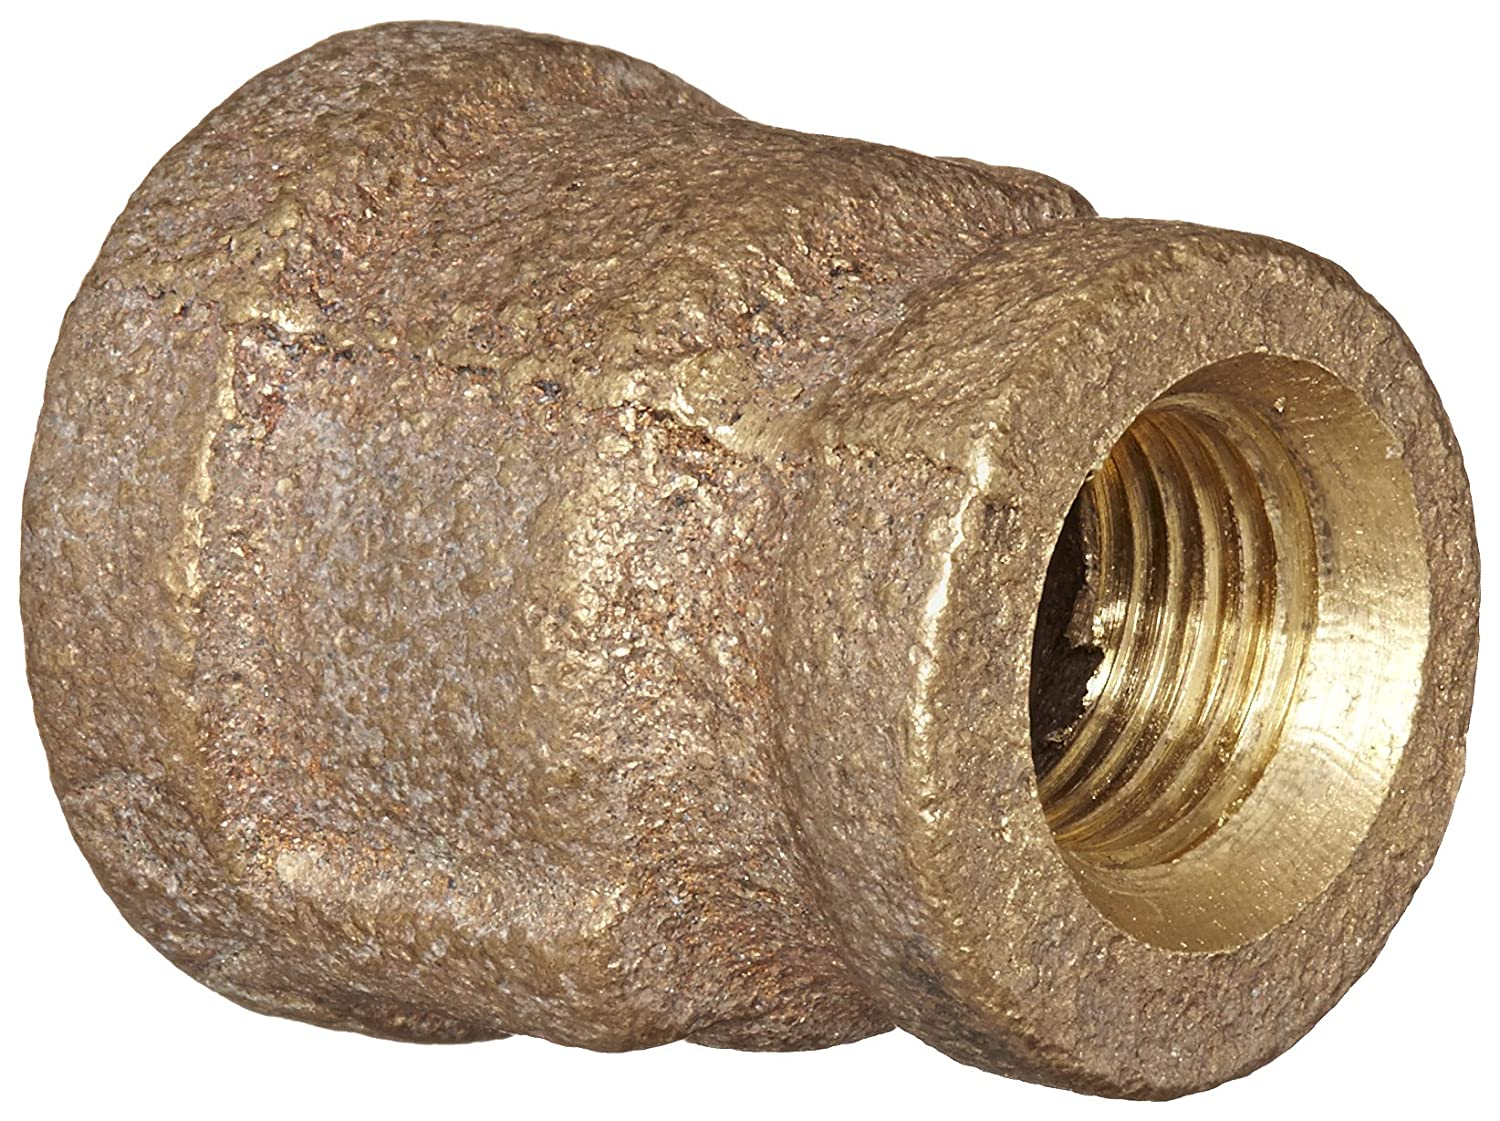 Anderson Metals 38119 Red Brass Pipe Fitting, Reducing Coupling, 1/4' x 1/8' Female Pipe 1/4 x 1/8 Female Pipe 38119-0402